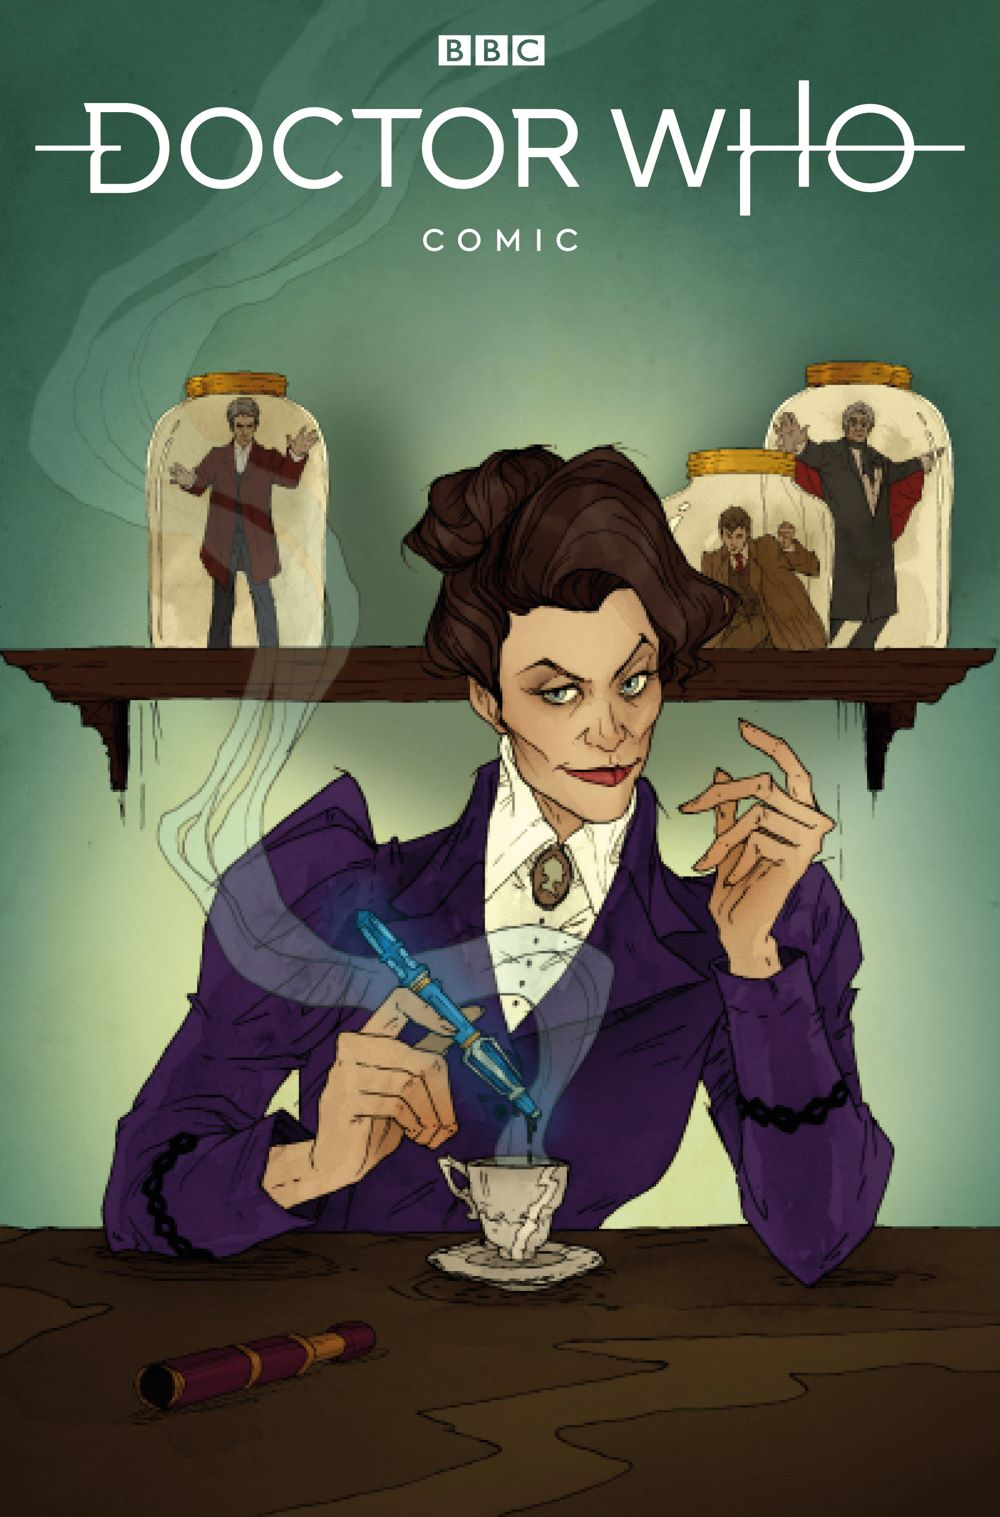 DOCTOR-WHO-MISSY-3-COVER-A-ABIGAIL-LARSON Titan Comics June 2021 Solicitations